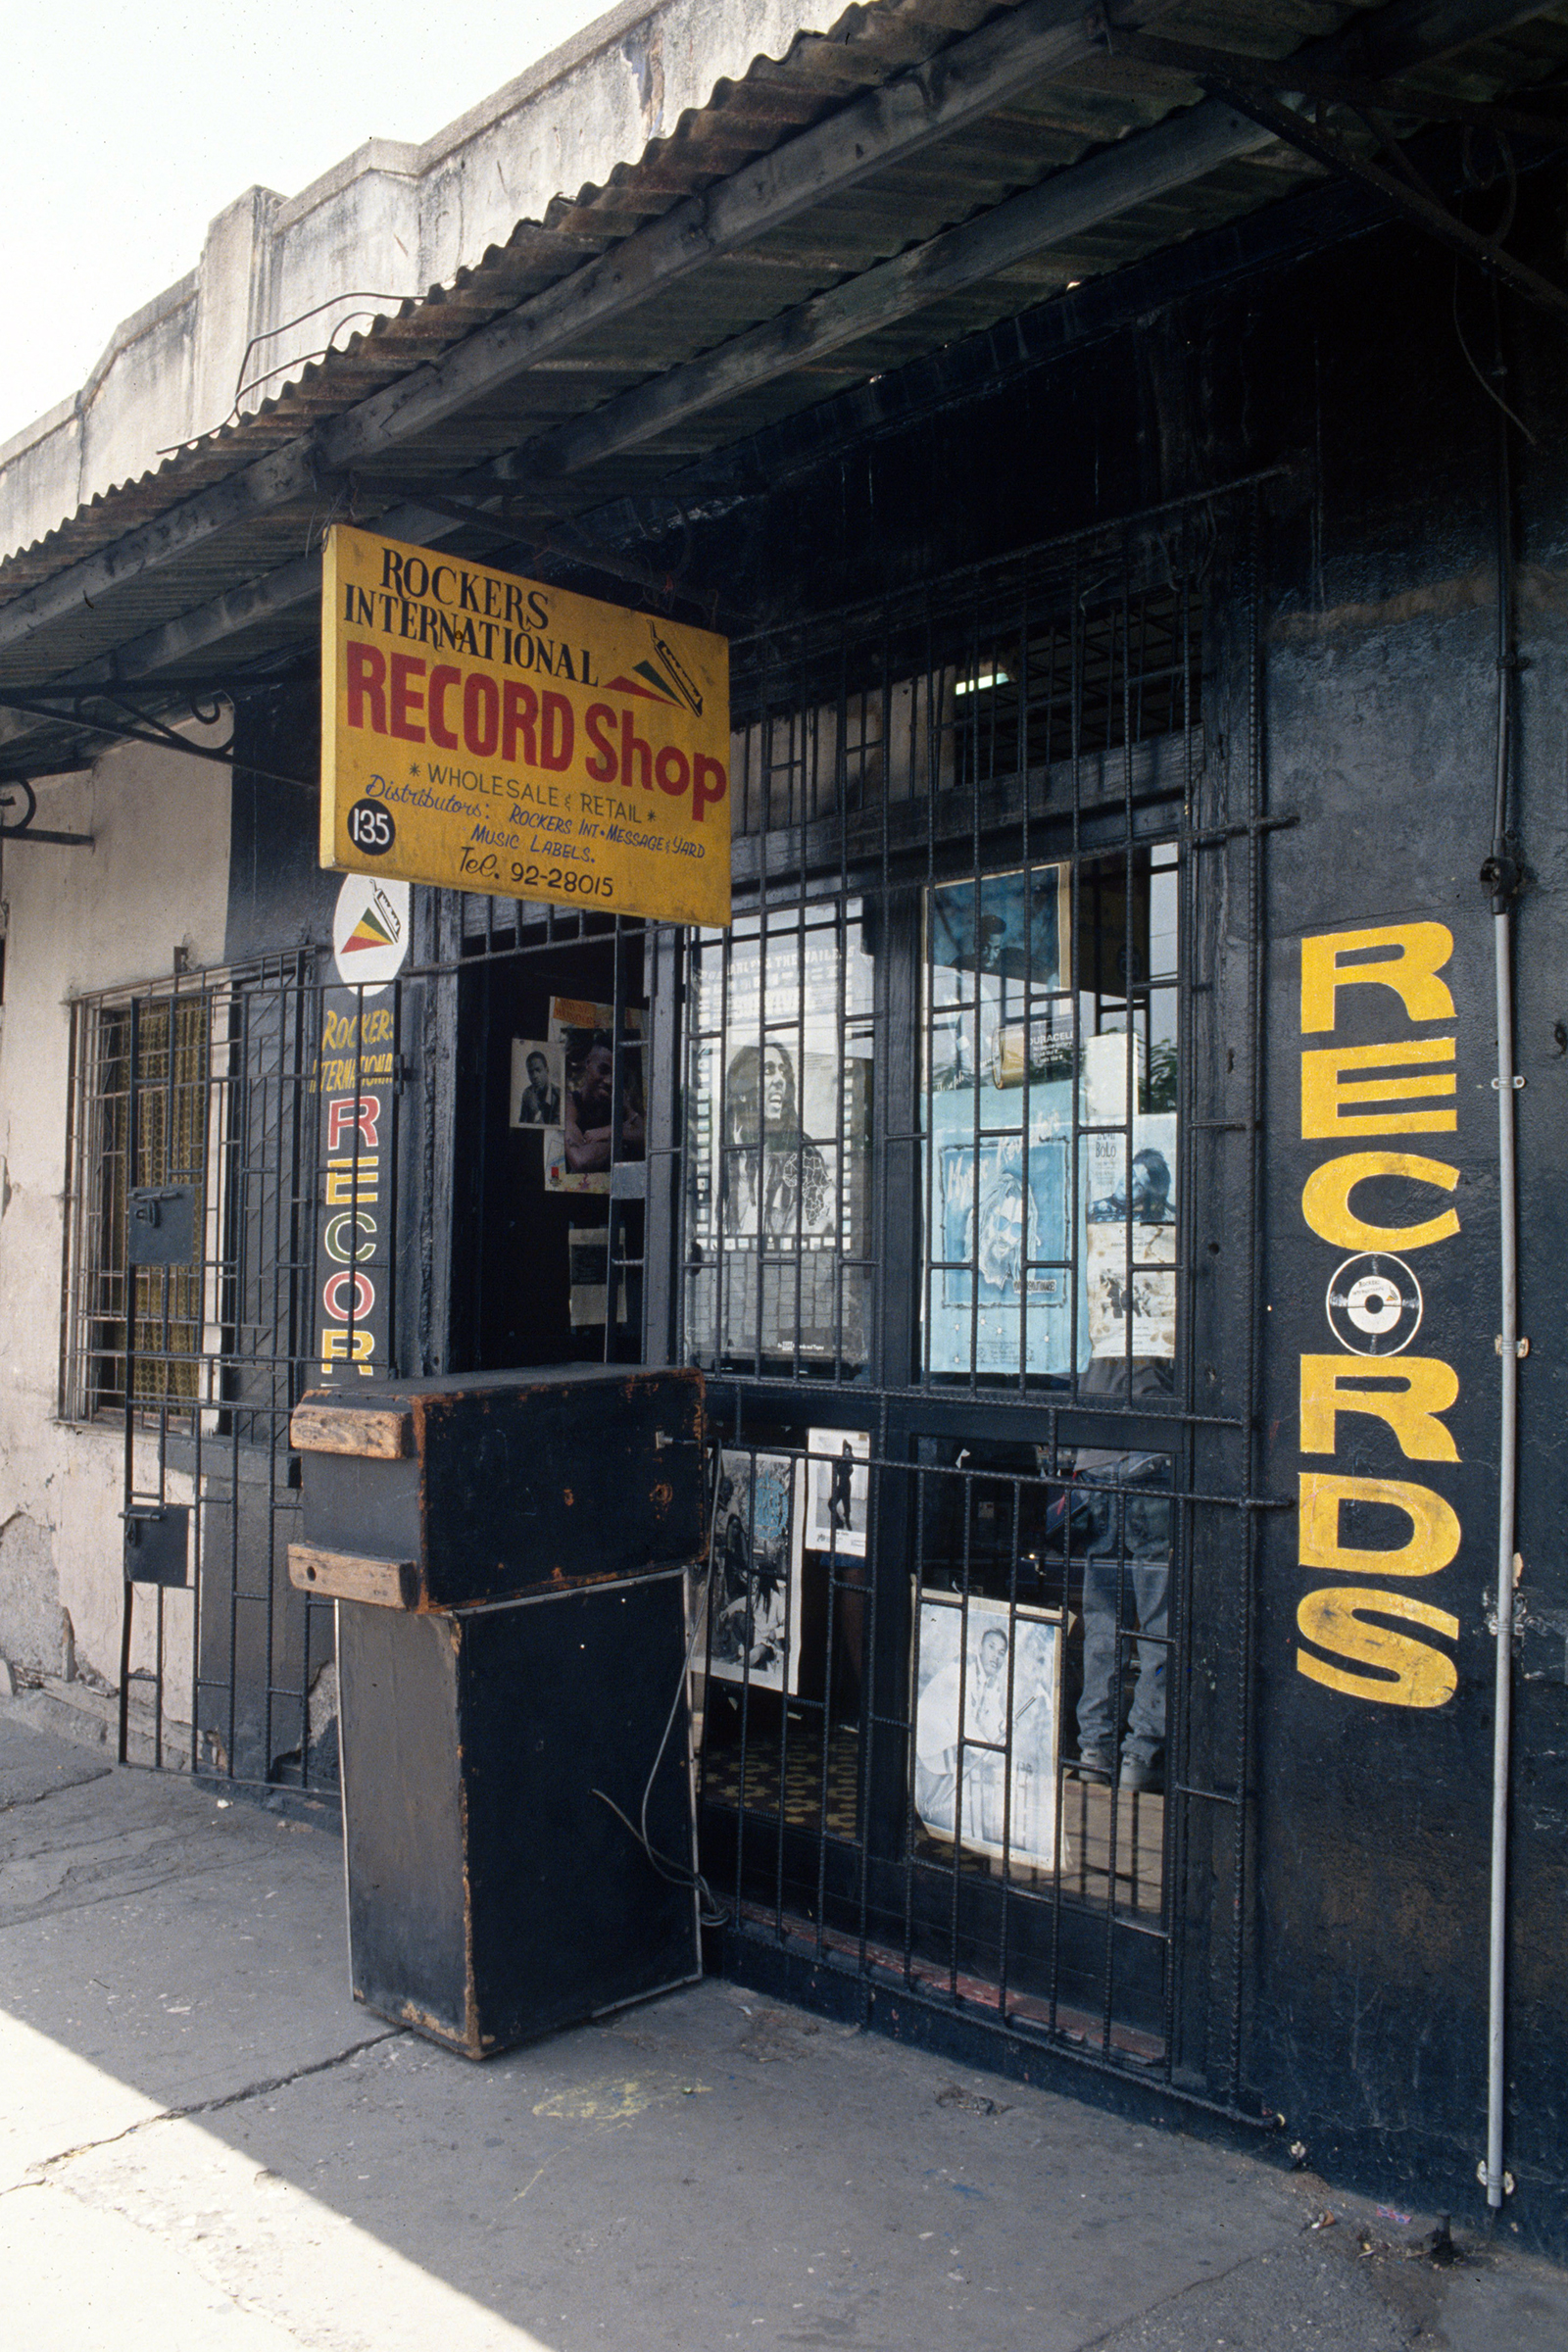 General view of Augustus Pablo's record shop 'Rockers International' on Orange Street, Kingston, Jamaica, 2000. (Photo by David Corio/Redferns)